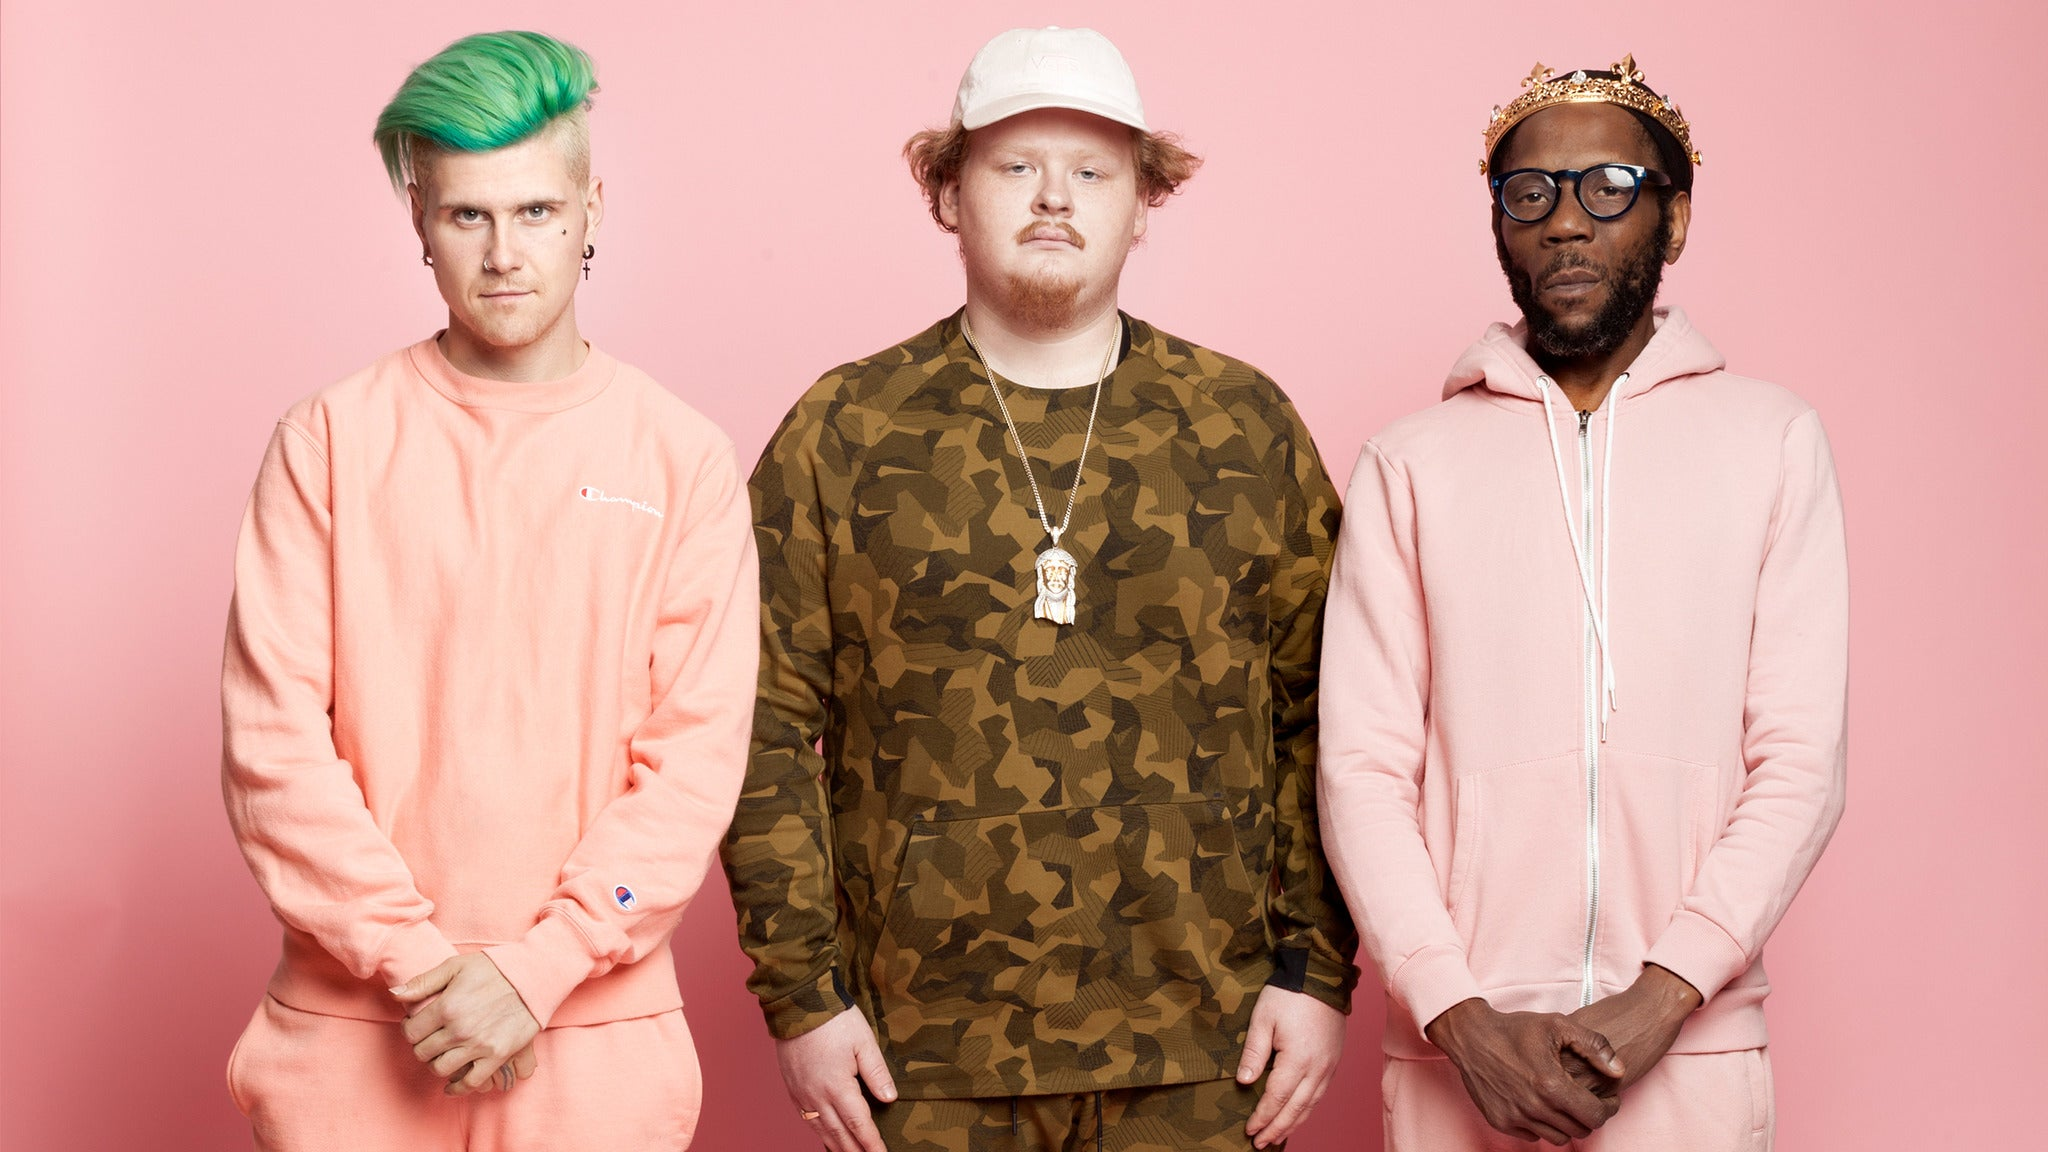 Too Many Zooz x Big Freedia presale password